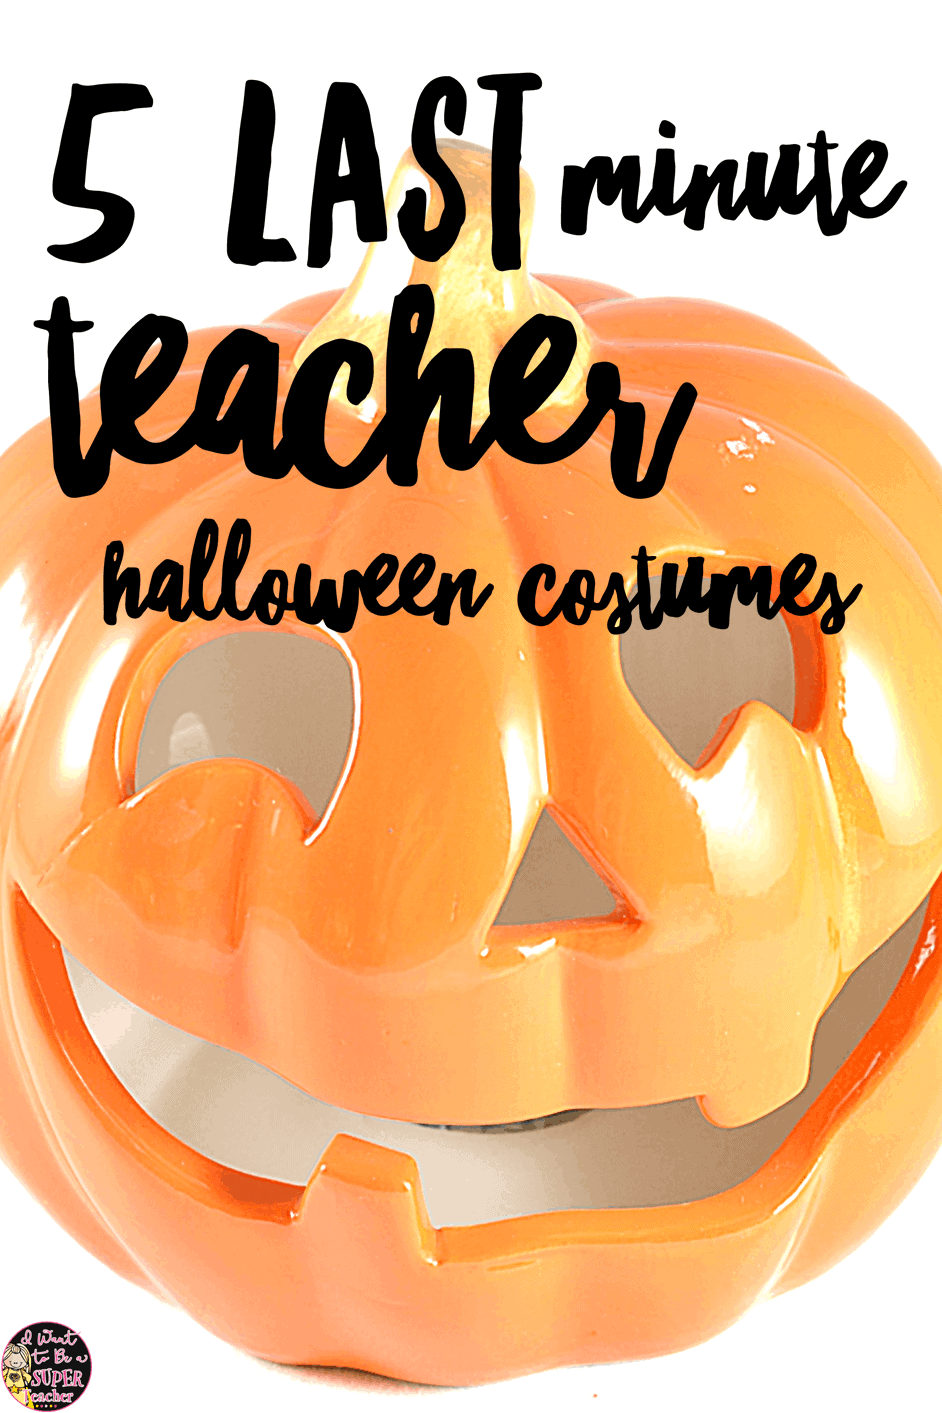 Five last minute teacher Halloween costume ideas